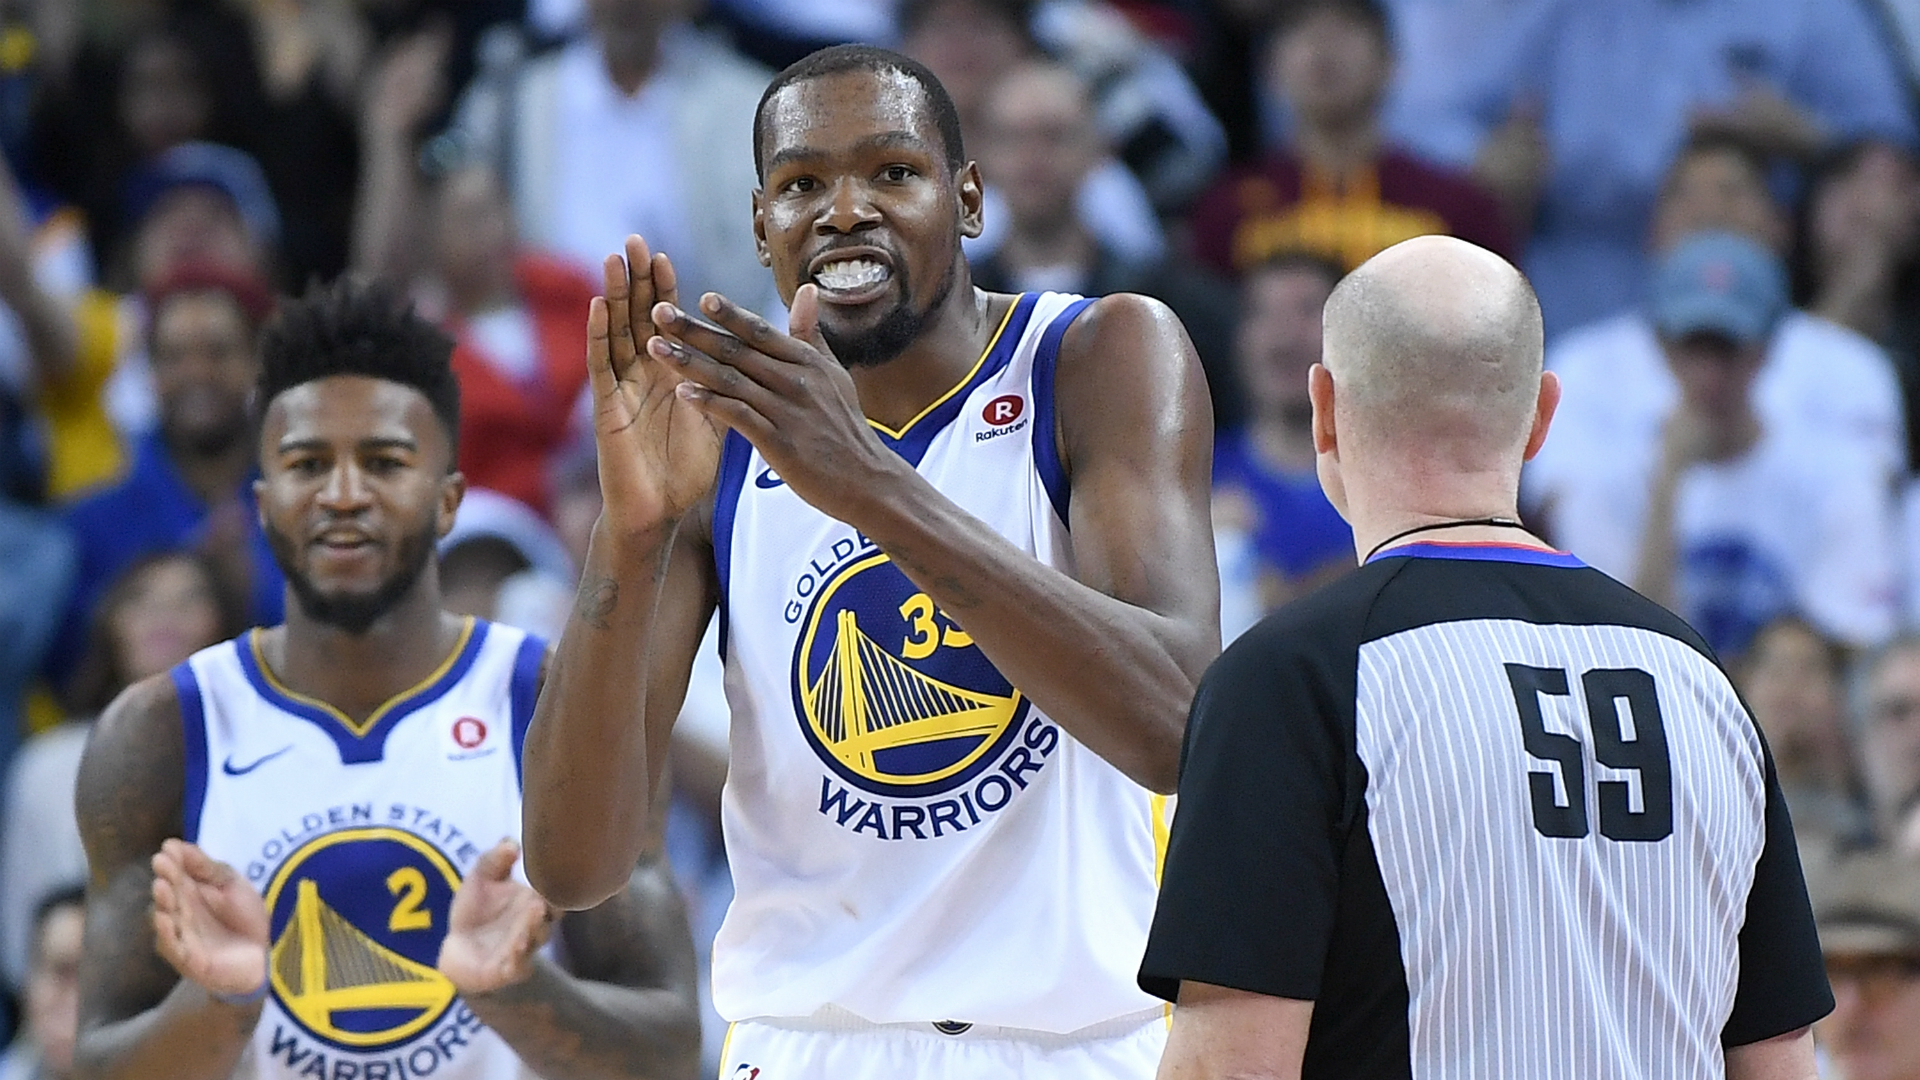 Cavs vs Warriors: NBA fans upset after Kevin Durant gets away with fouls on LeBron James - NBA - Sporting ...